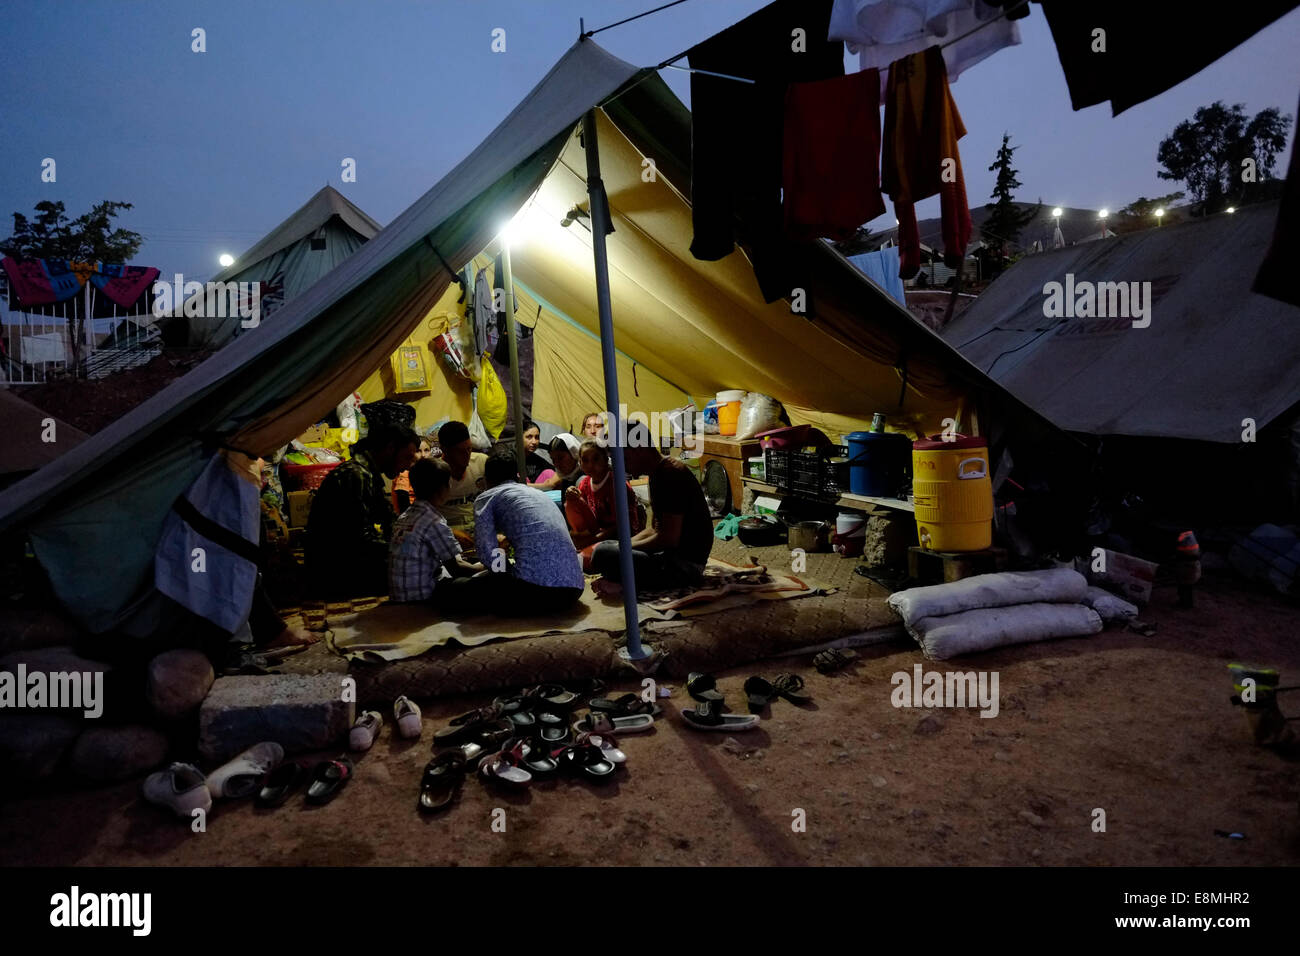 A Yazidi family eating inside a temporary shelter tent at a Yazidi refugee c& in the town of Zakho Northern Iraq. Displaced people from the minority ... & A Yazidi family eating inside a temporary shelter tent at a Yazidi ...